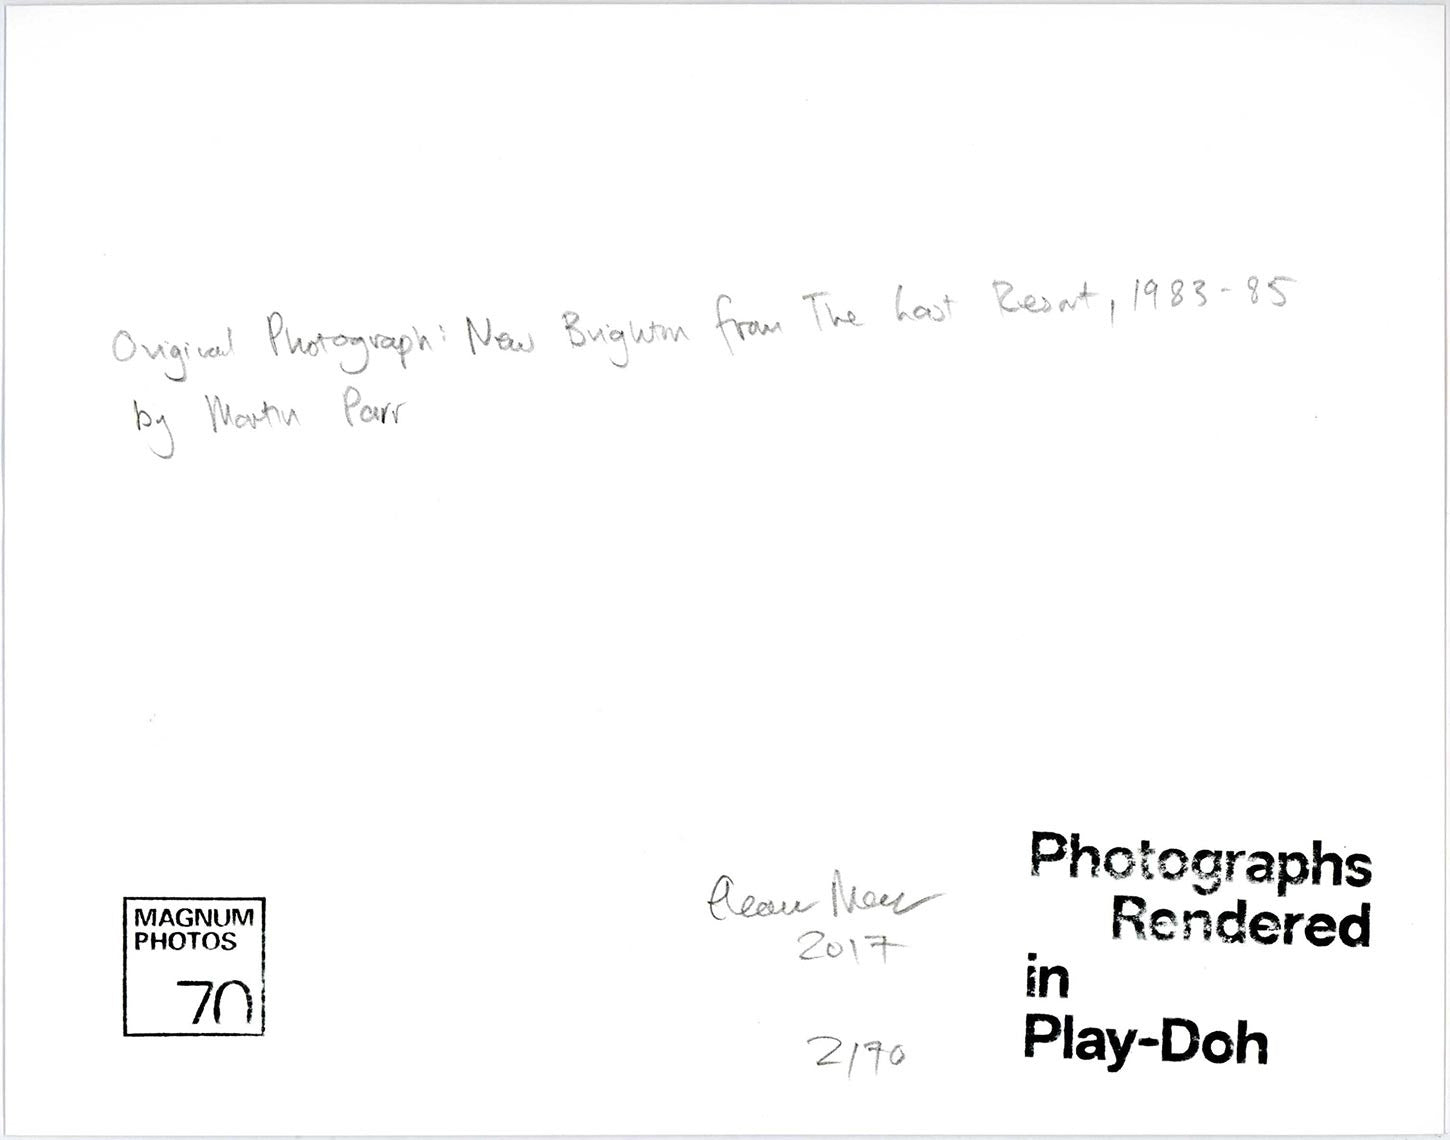 Photographs Rendered in Play-Doh: New Brighton. From 'The Last Resort', 1983-85 by Martin Parr